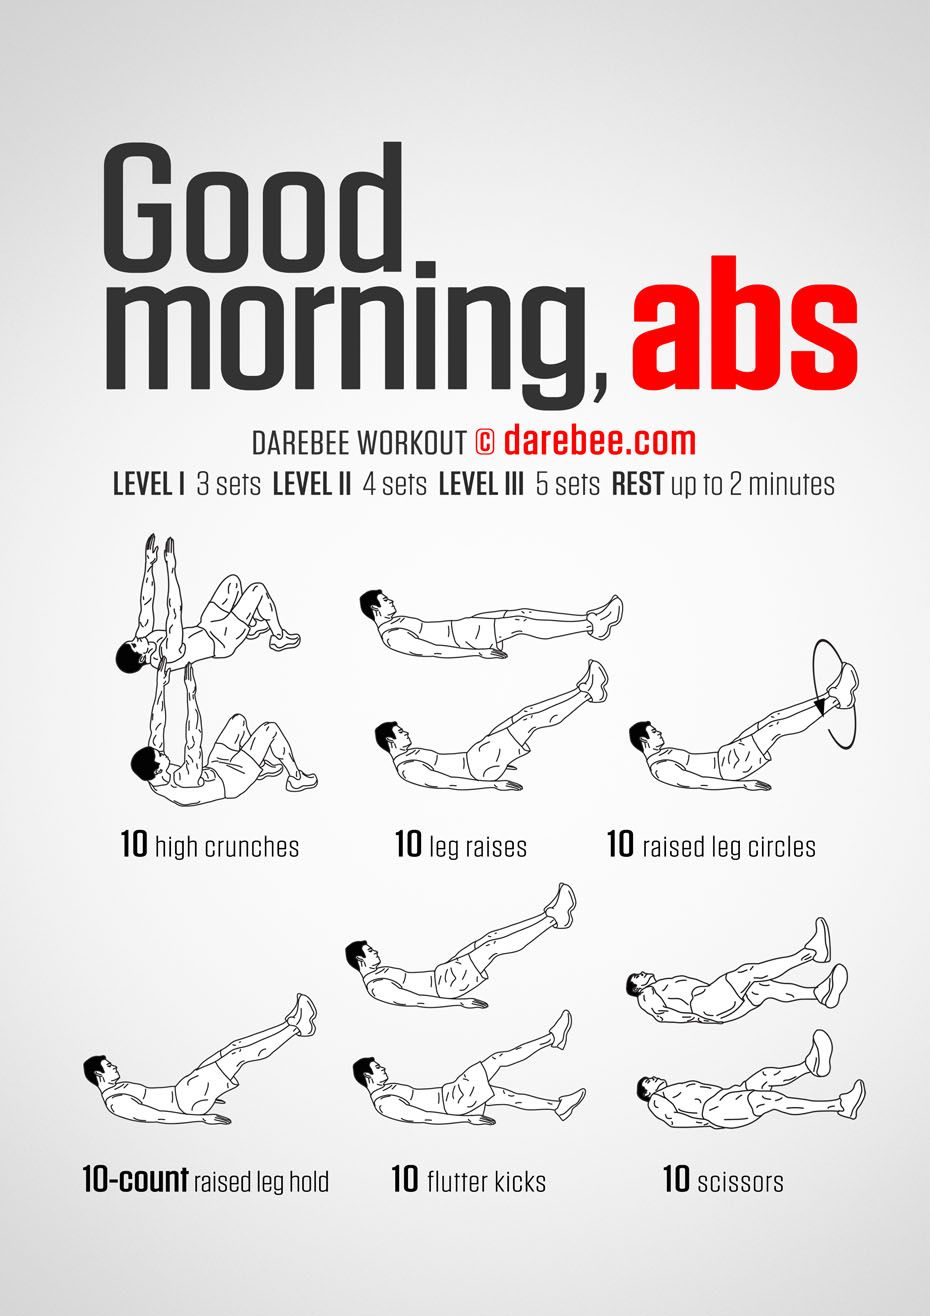 The best morning exercises